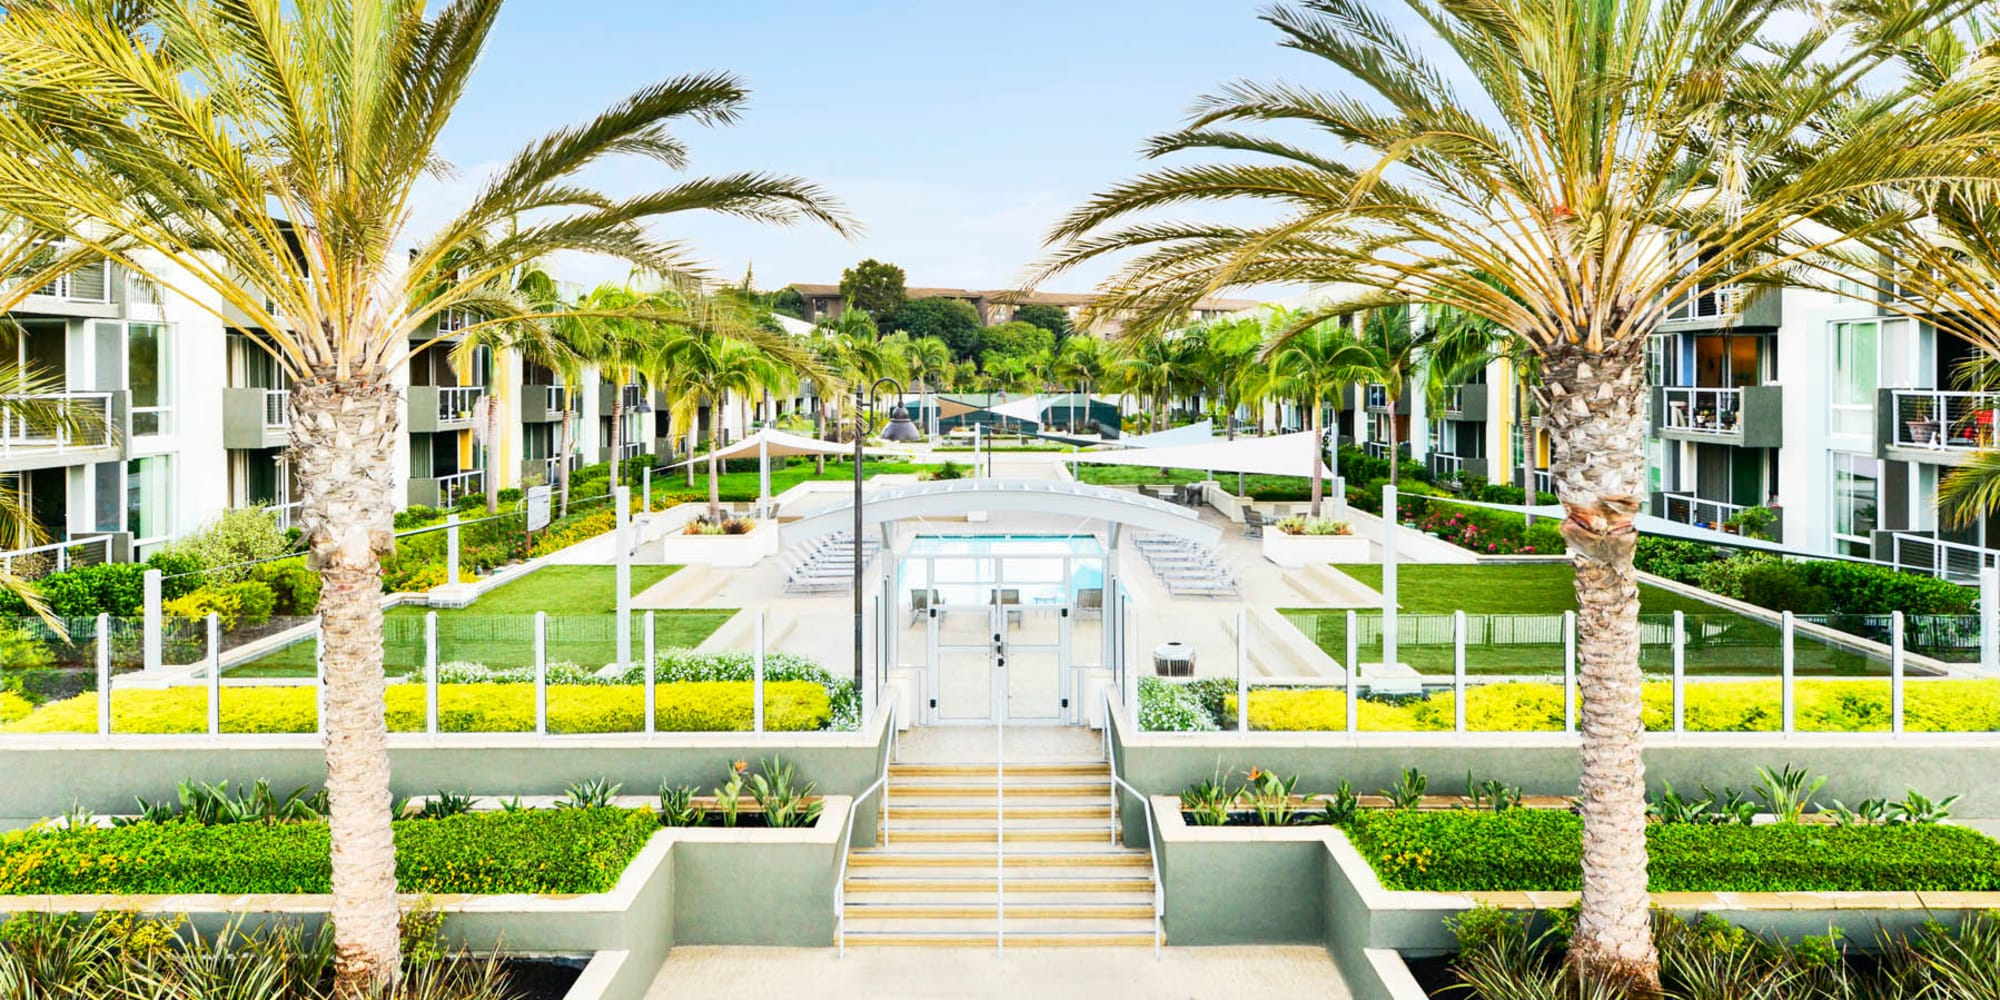 View a virtual tour of our luxury waterside community at Waters Edge at Marina Harbor in Marina Del Rey, California